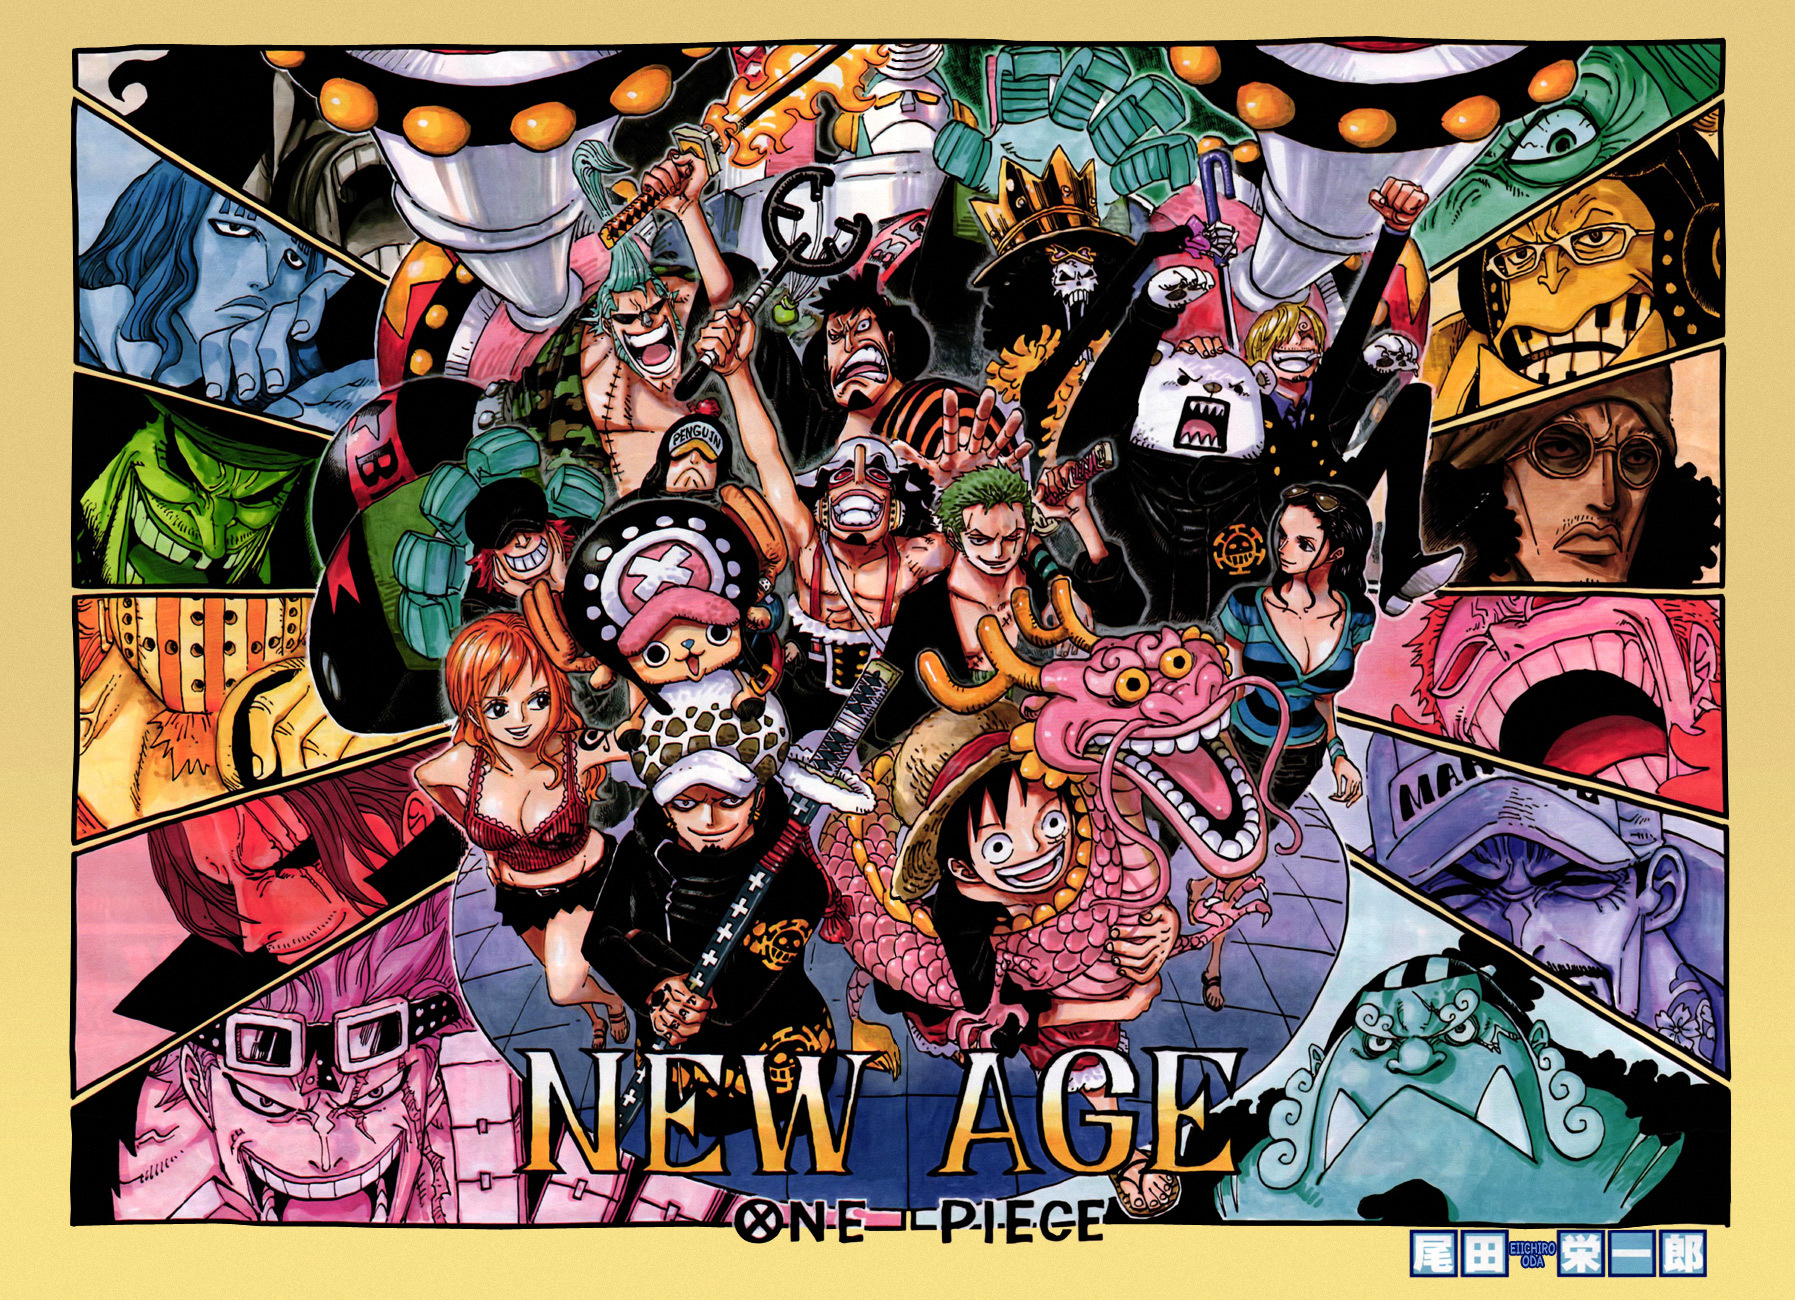 Cover page or Colour spread? Poll Results - One Piece - Fanpop